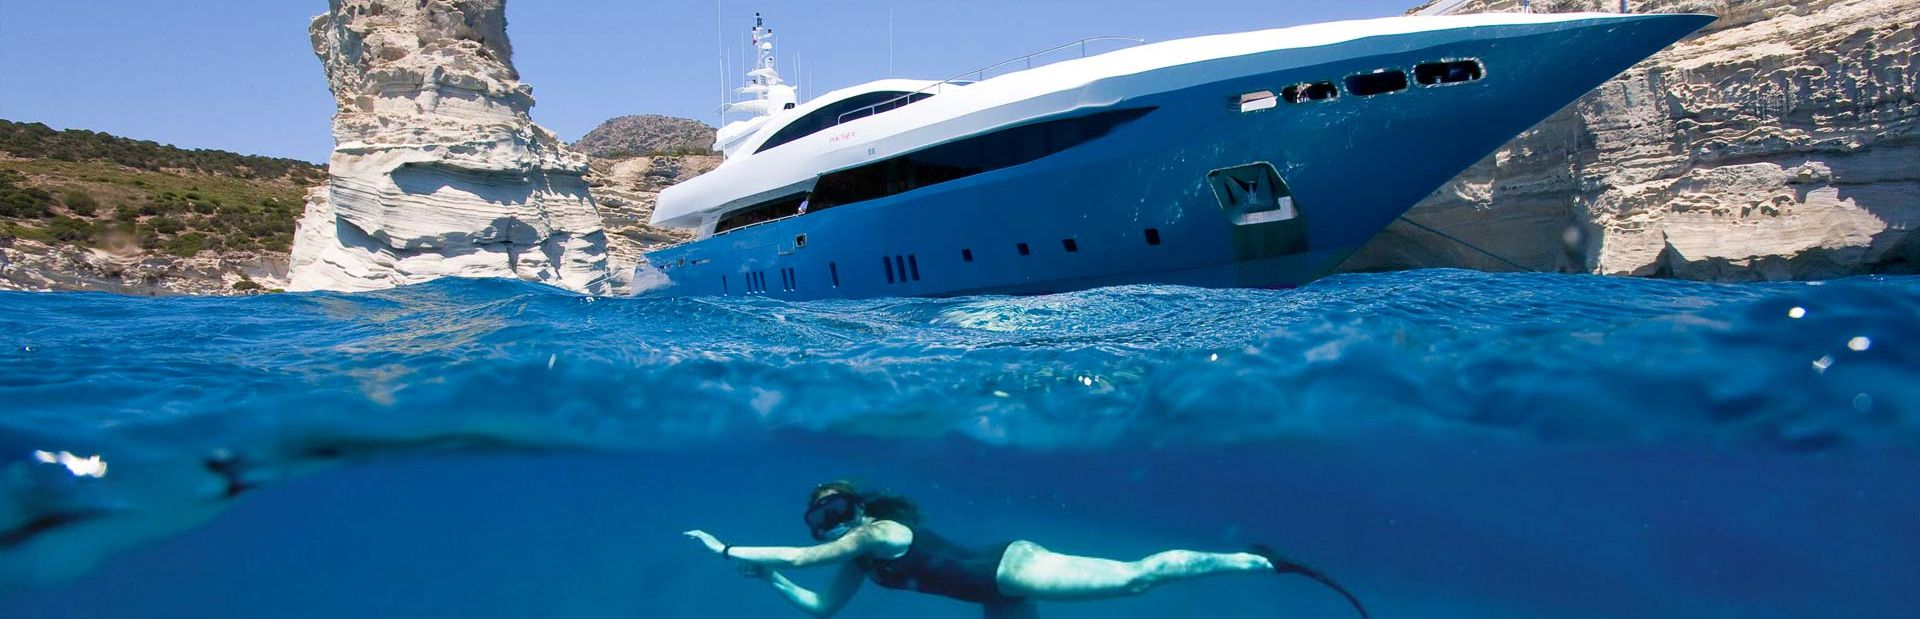 person underwater snorkeling and superyacht